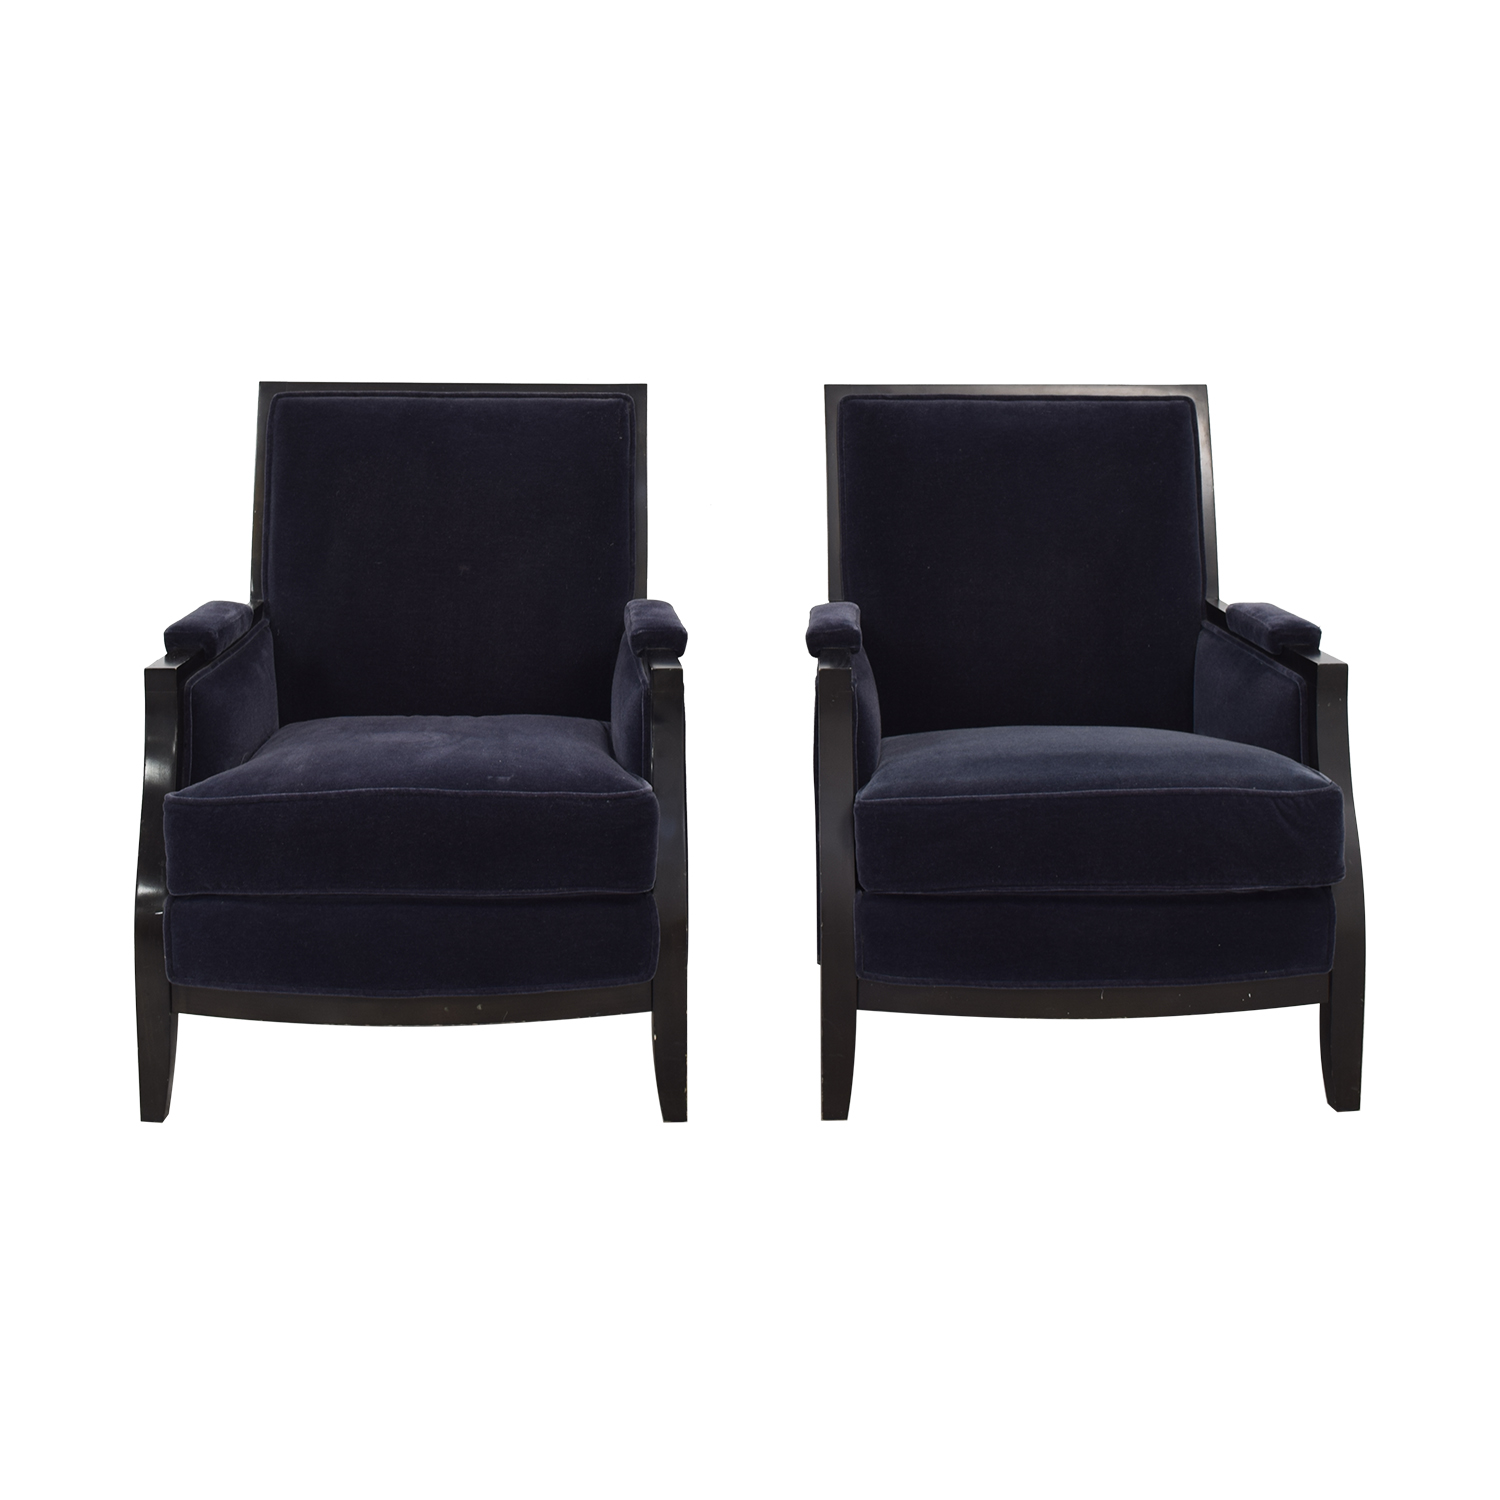 Buy Todd Hase Blue Vincent Bergere Chairs Todd Hase Chairs